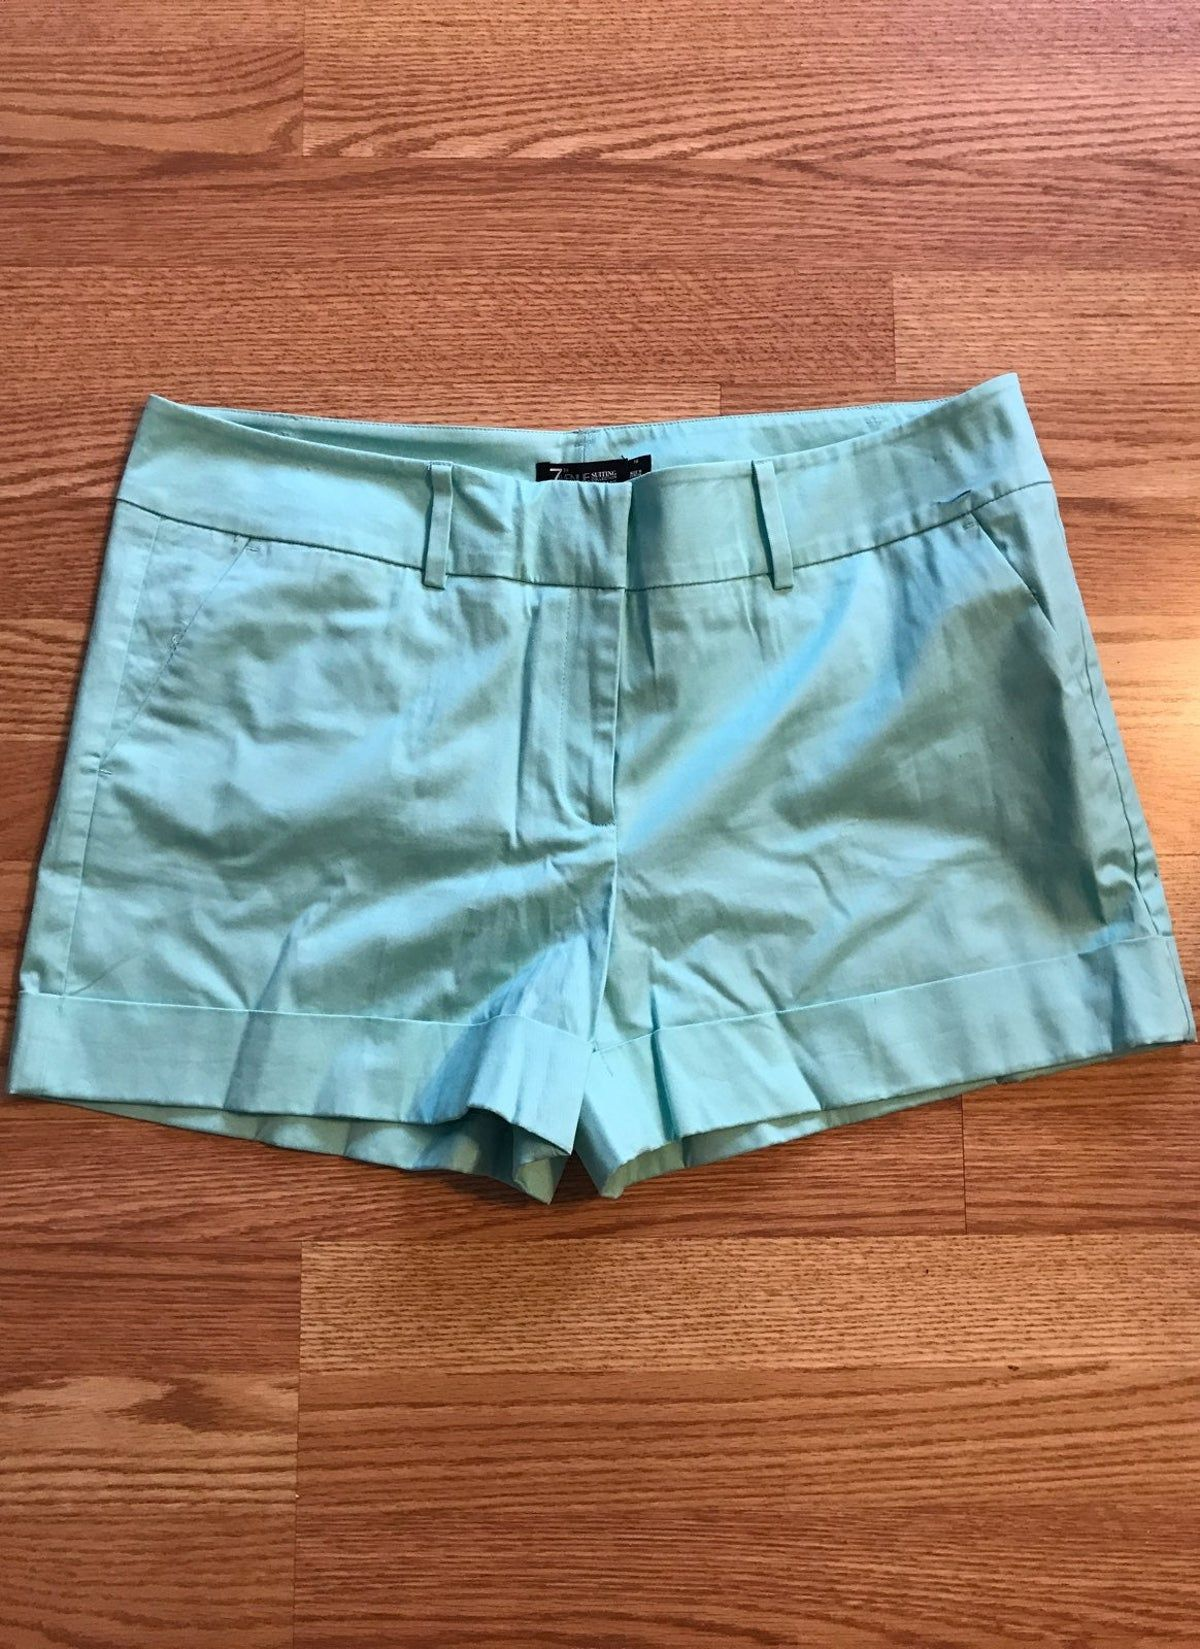 Pin By Bethany Sartain On Life S A Beach Turquoise Shorts Shorts Turquoise